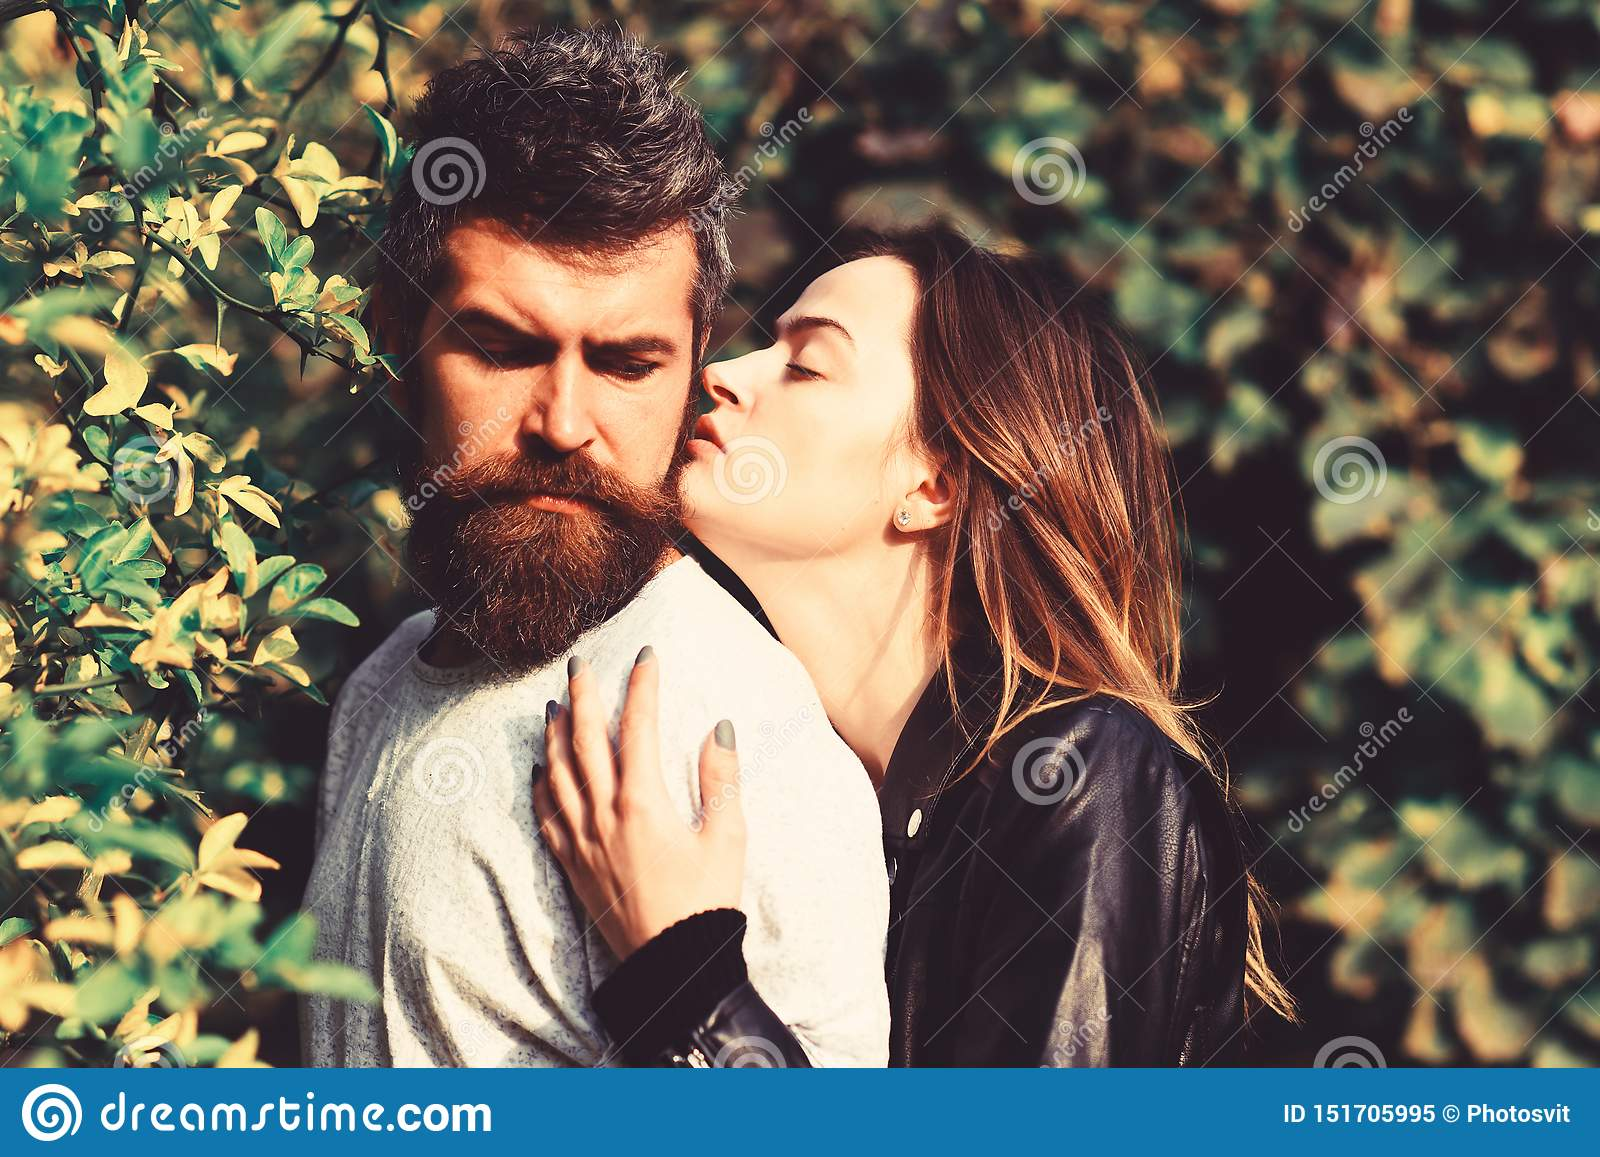 Man and woman with romantic faces on autumn trees background.